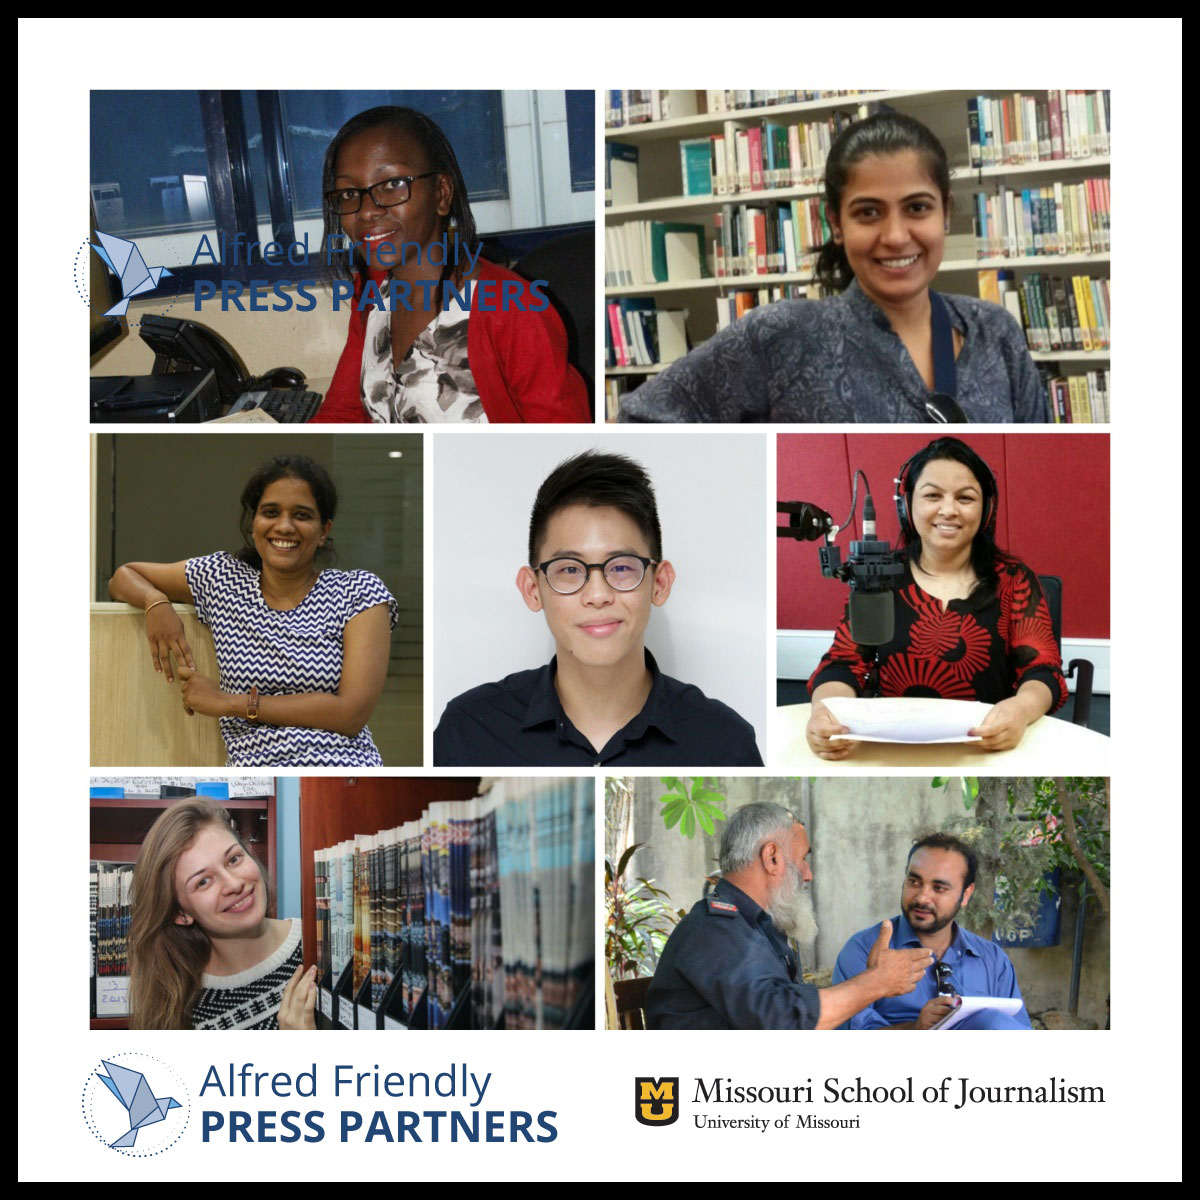 Alfred Friendly Press Partners Fellowship Program Class of 2017